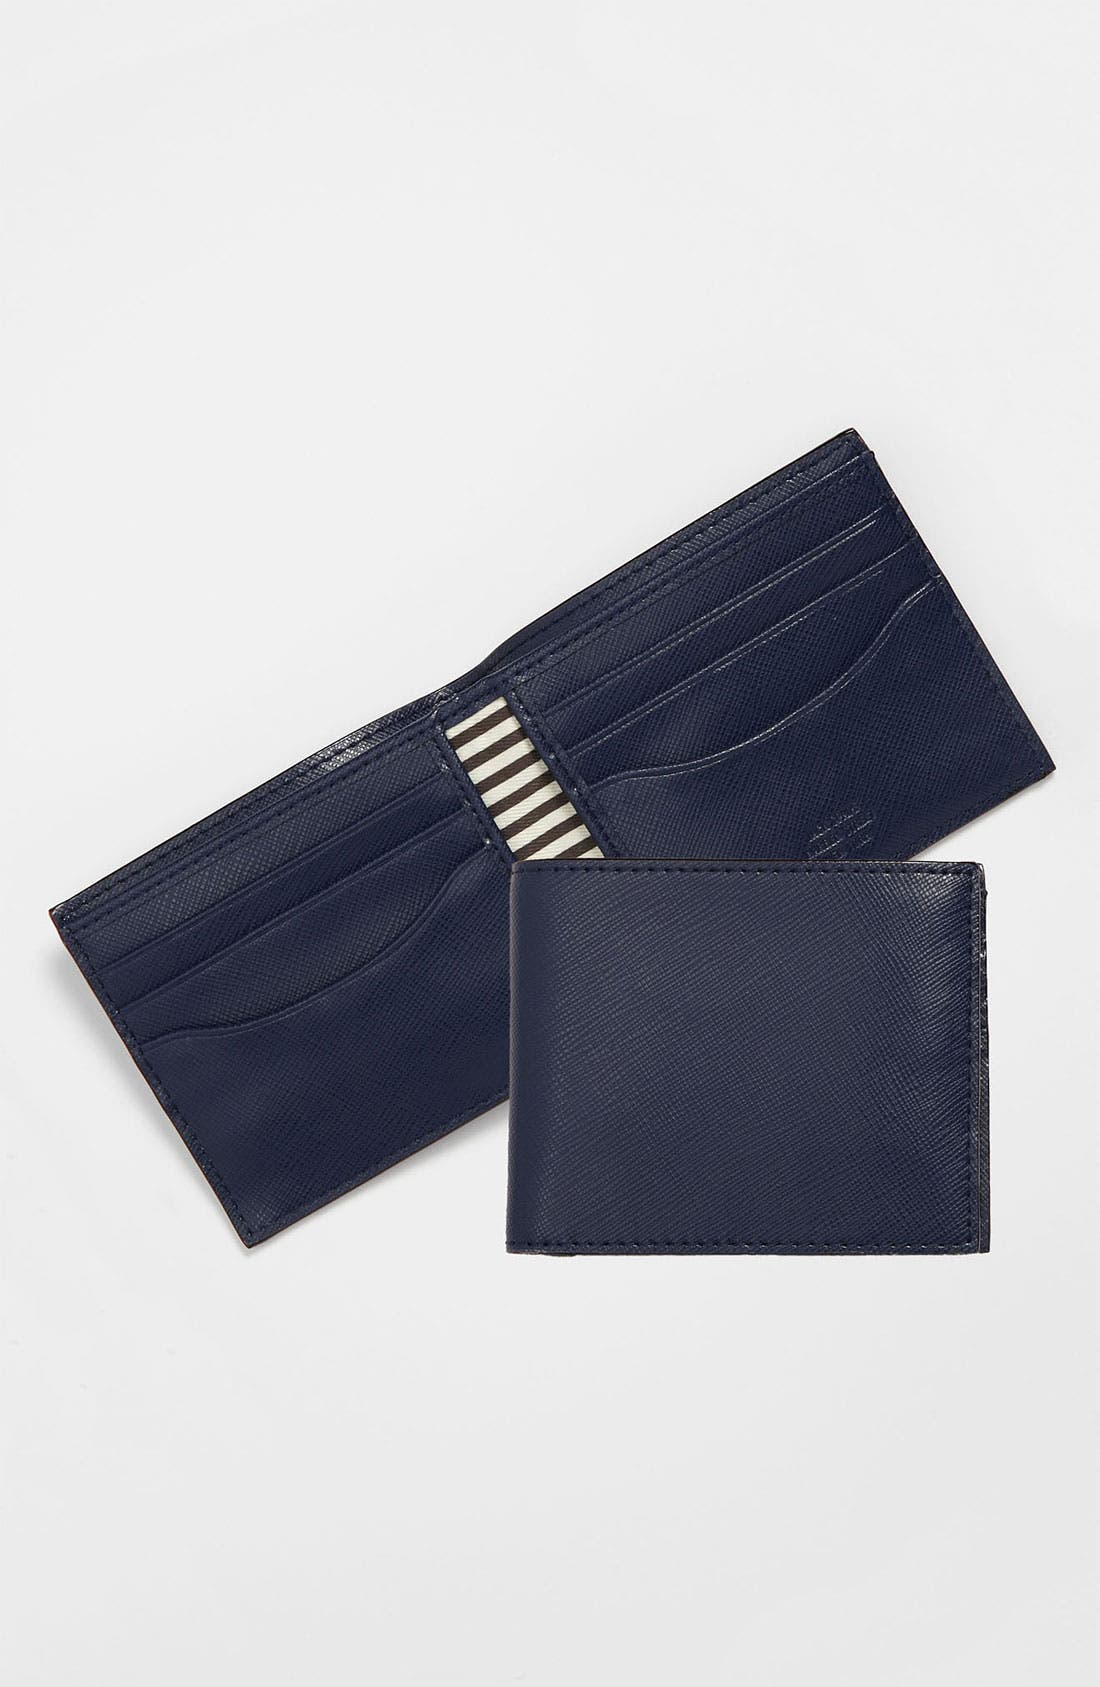 Alternate Image 2  - Jack Spade Crosshatched Leather Billfold Wallet